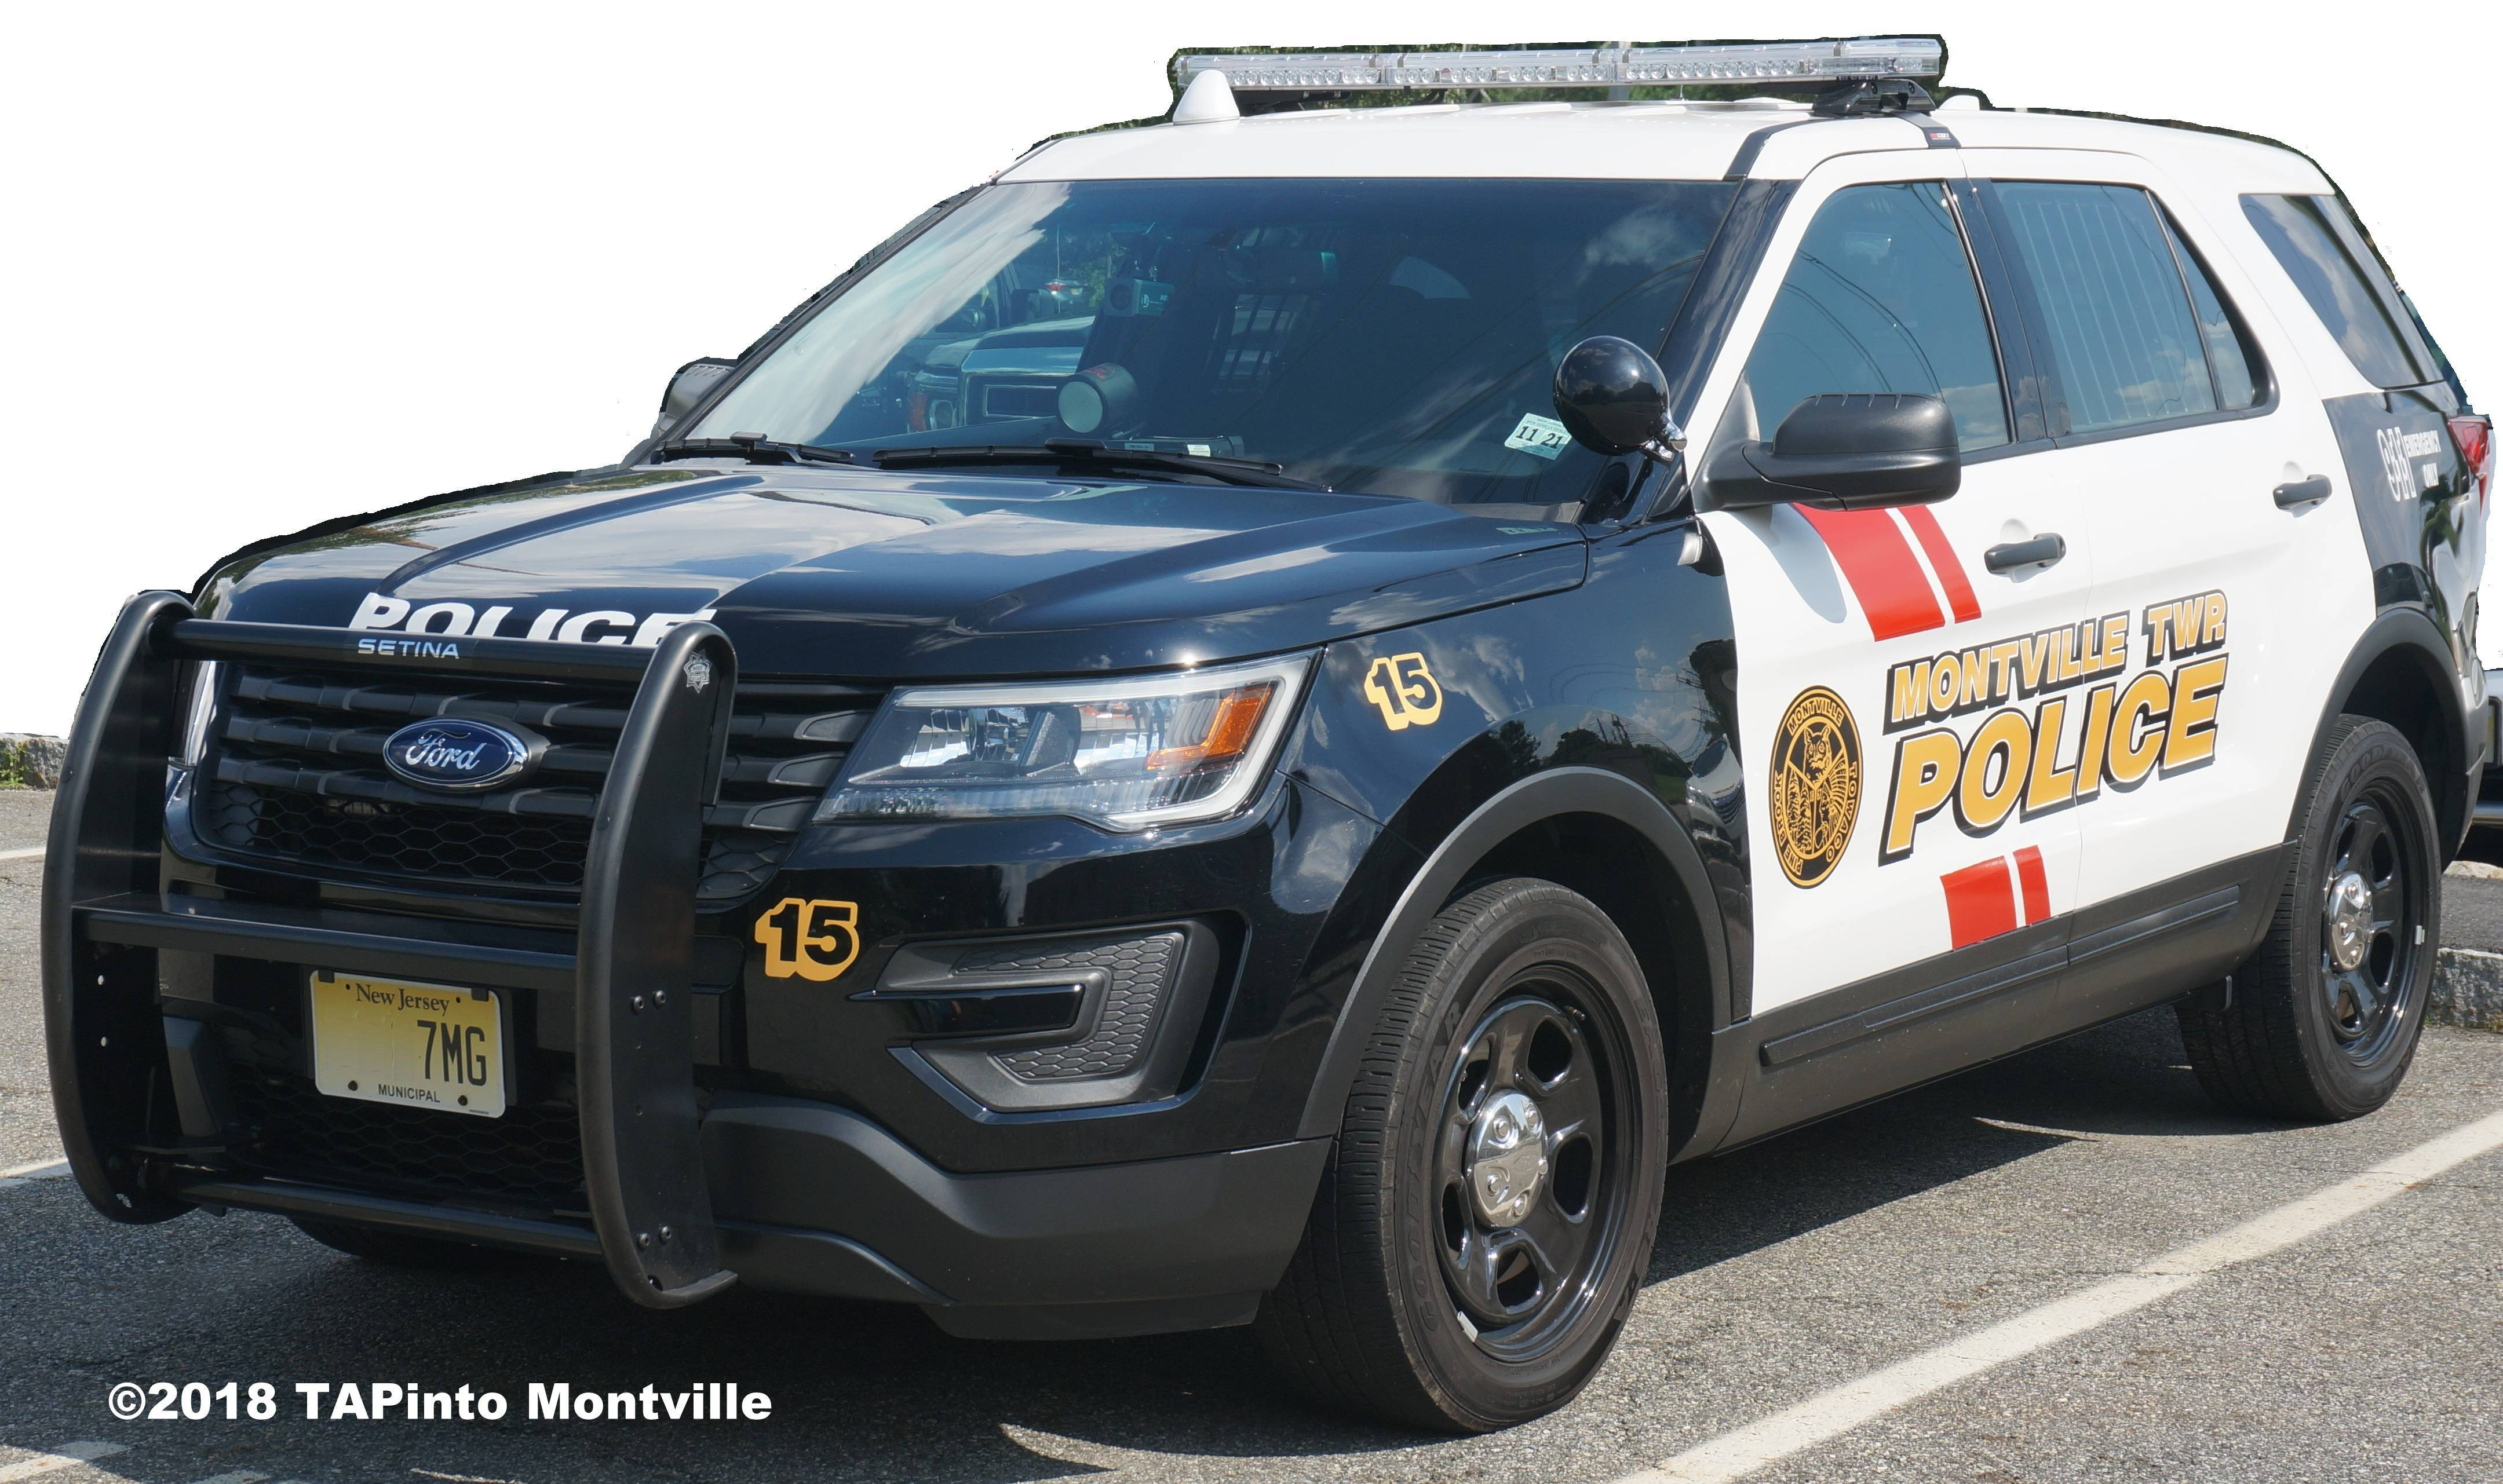 a7dc63cbfcaaaf72a1c9_a_Montville_Township_Police_SUV_15__2018_TAPinto_Montville.jpg